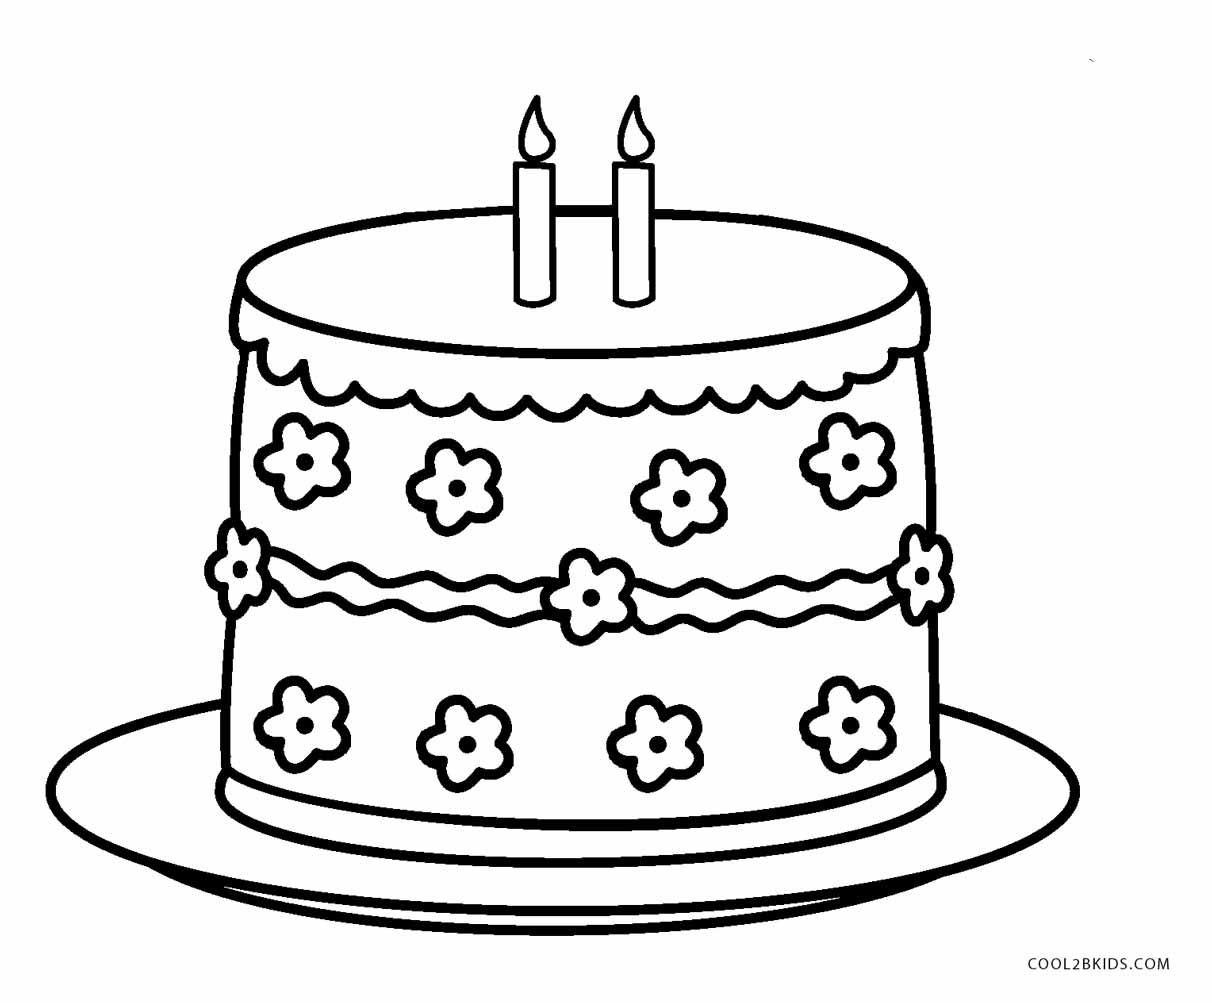 birthday cake coloring ; Printable-Birthday-Cake-Coloring-Page